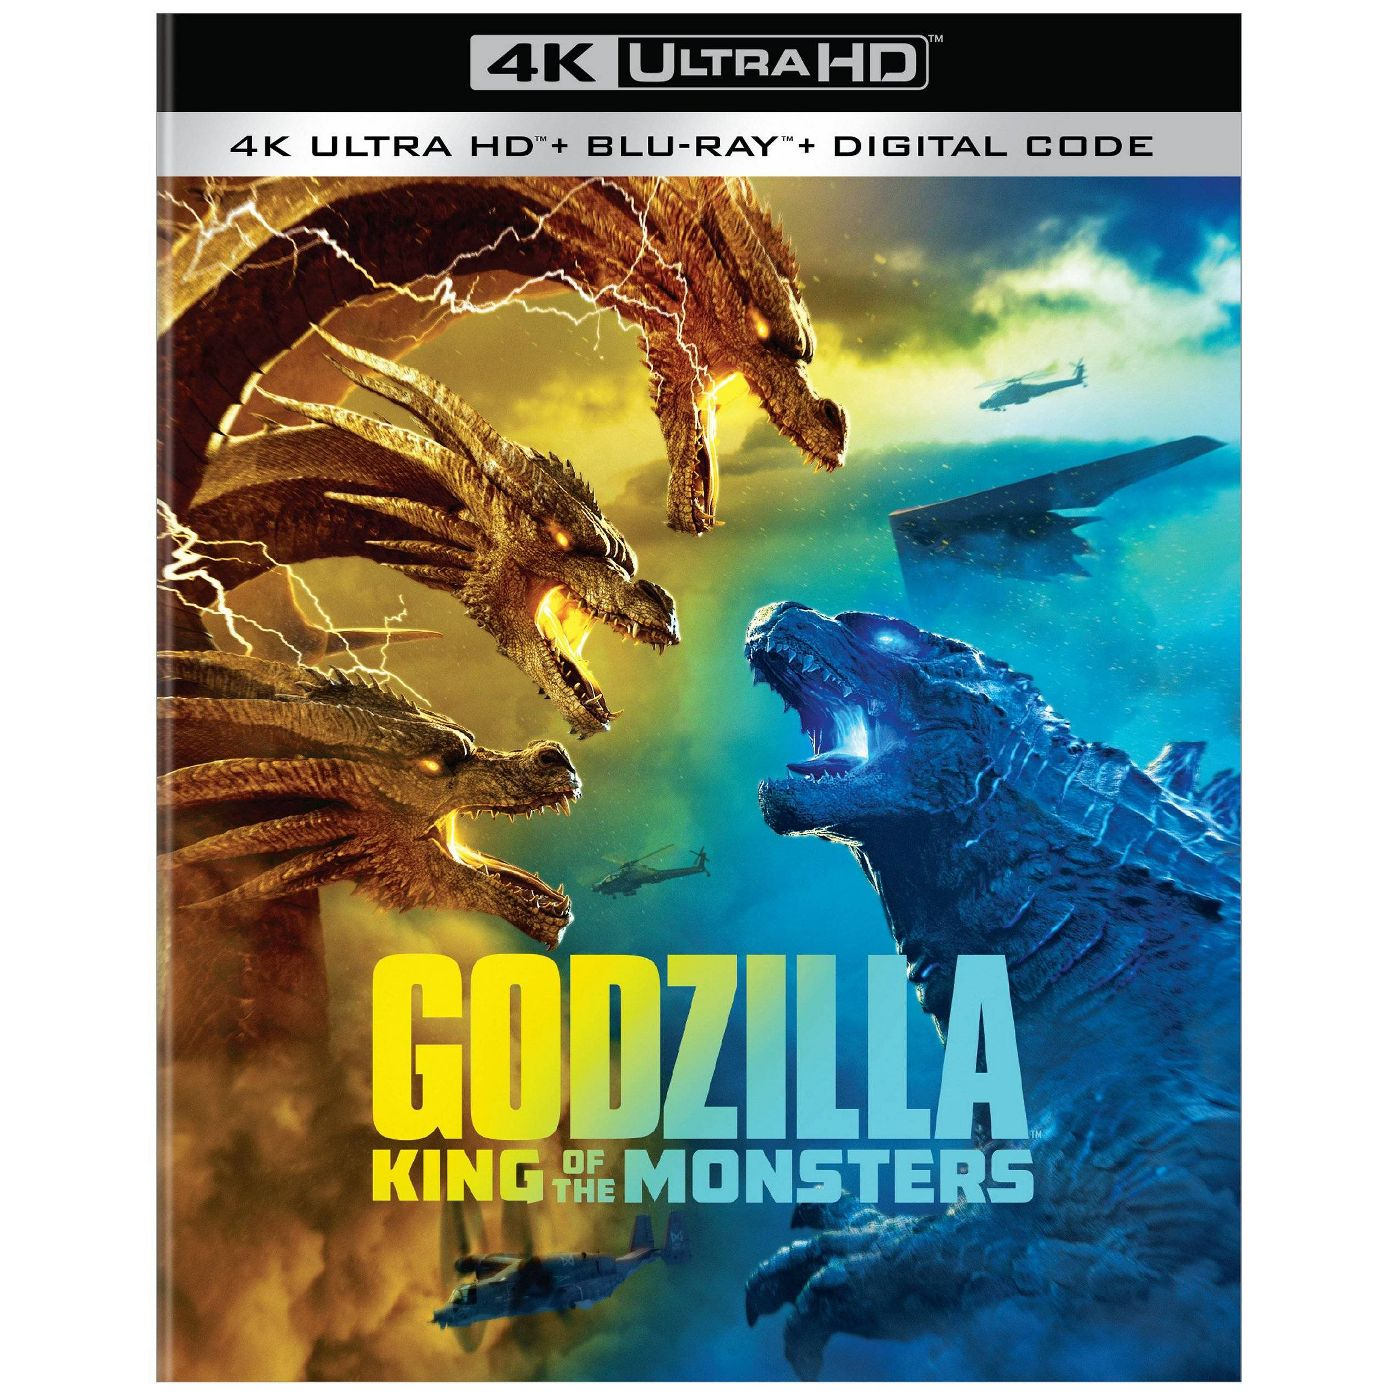 Godzilla 2 King of the Monsters 4K Ultra HD Cover